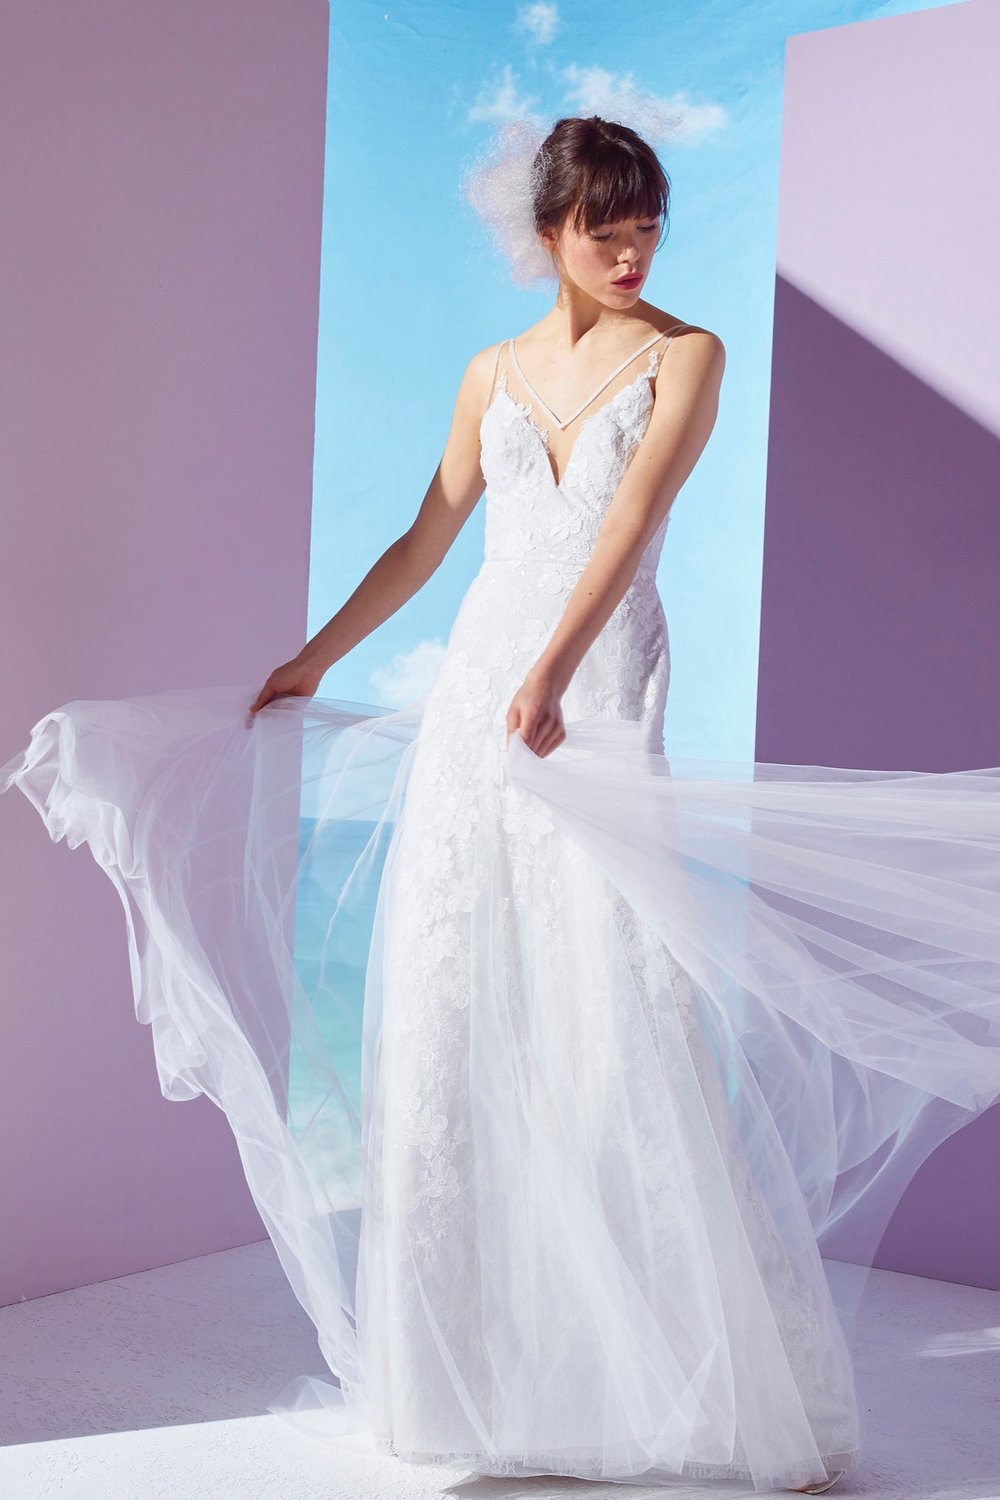 Ines by Ines Di Santo Bridal Spring 2019   PHOEBE    INQUIRE